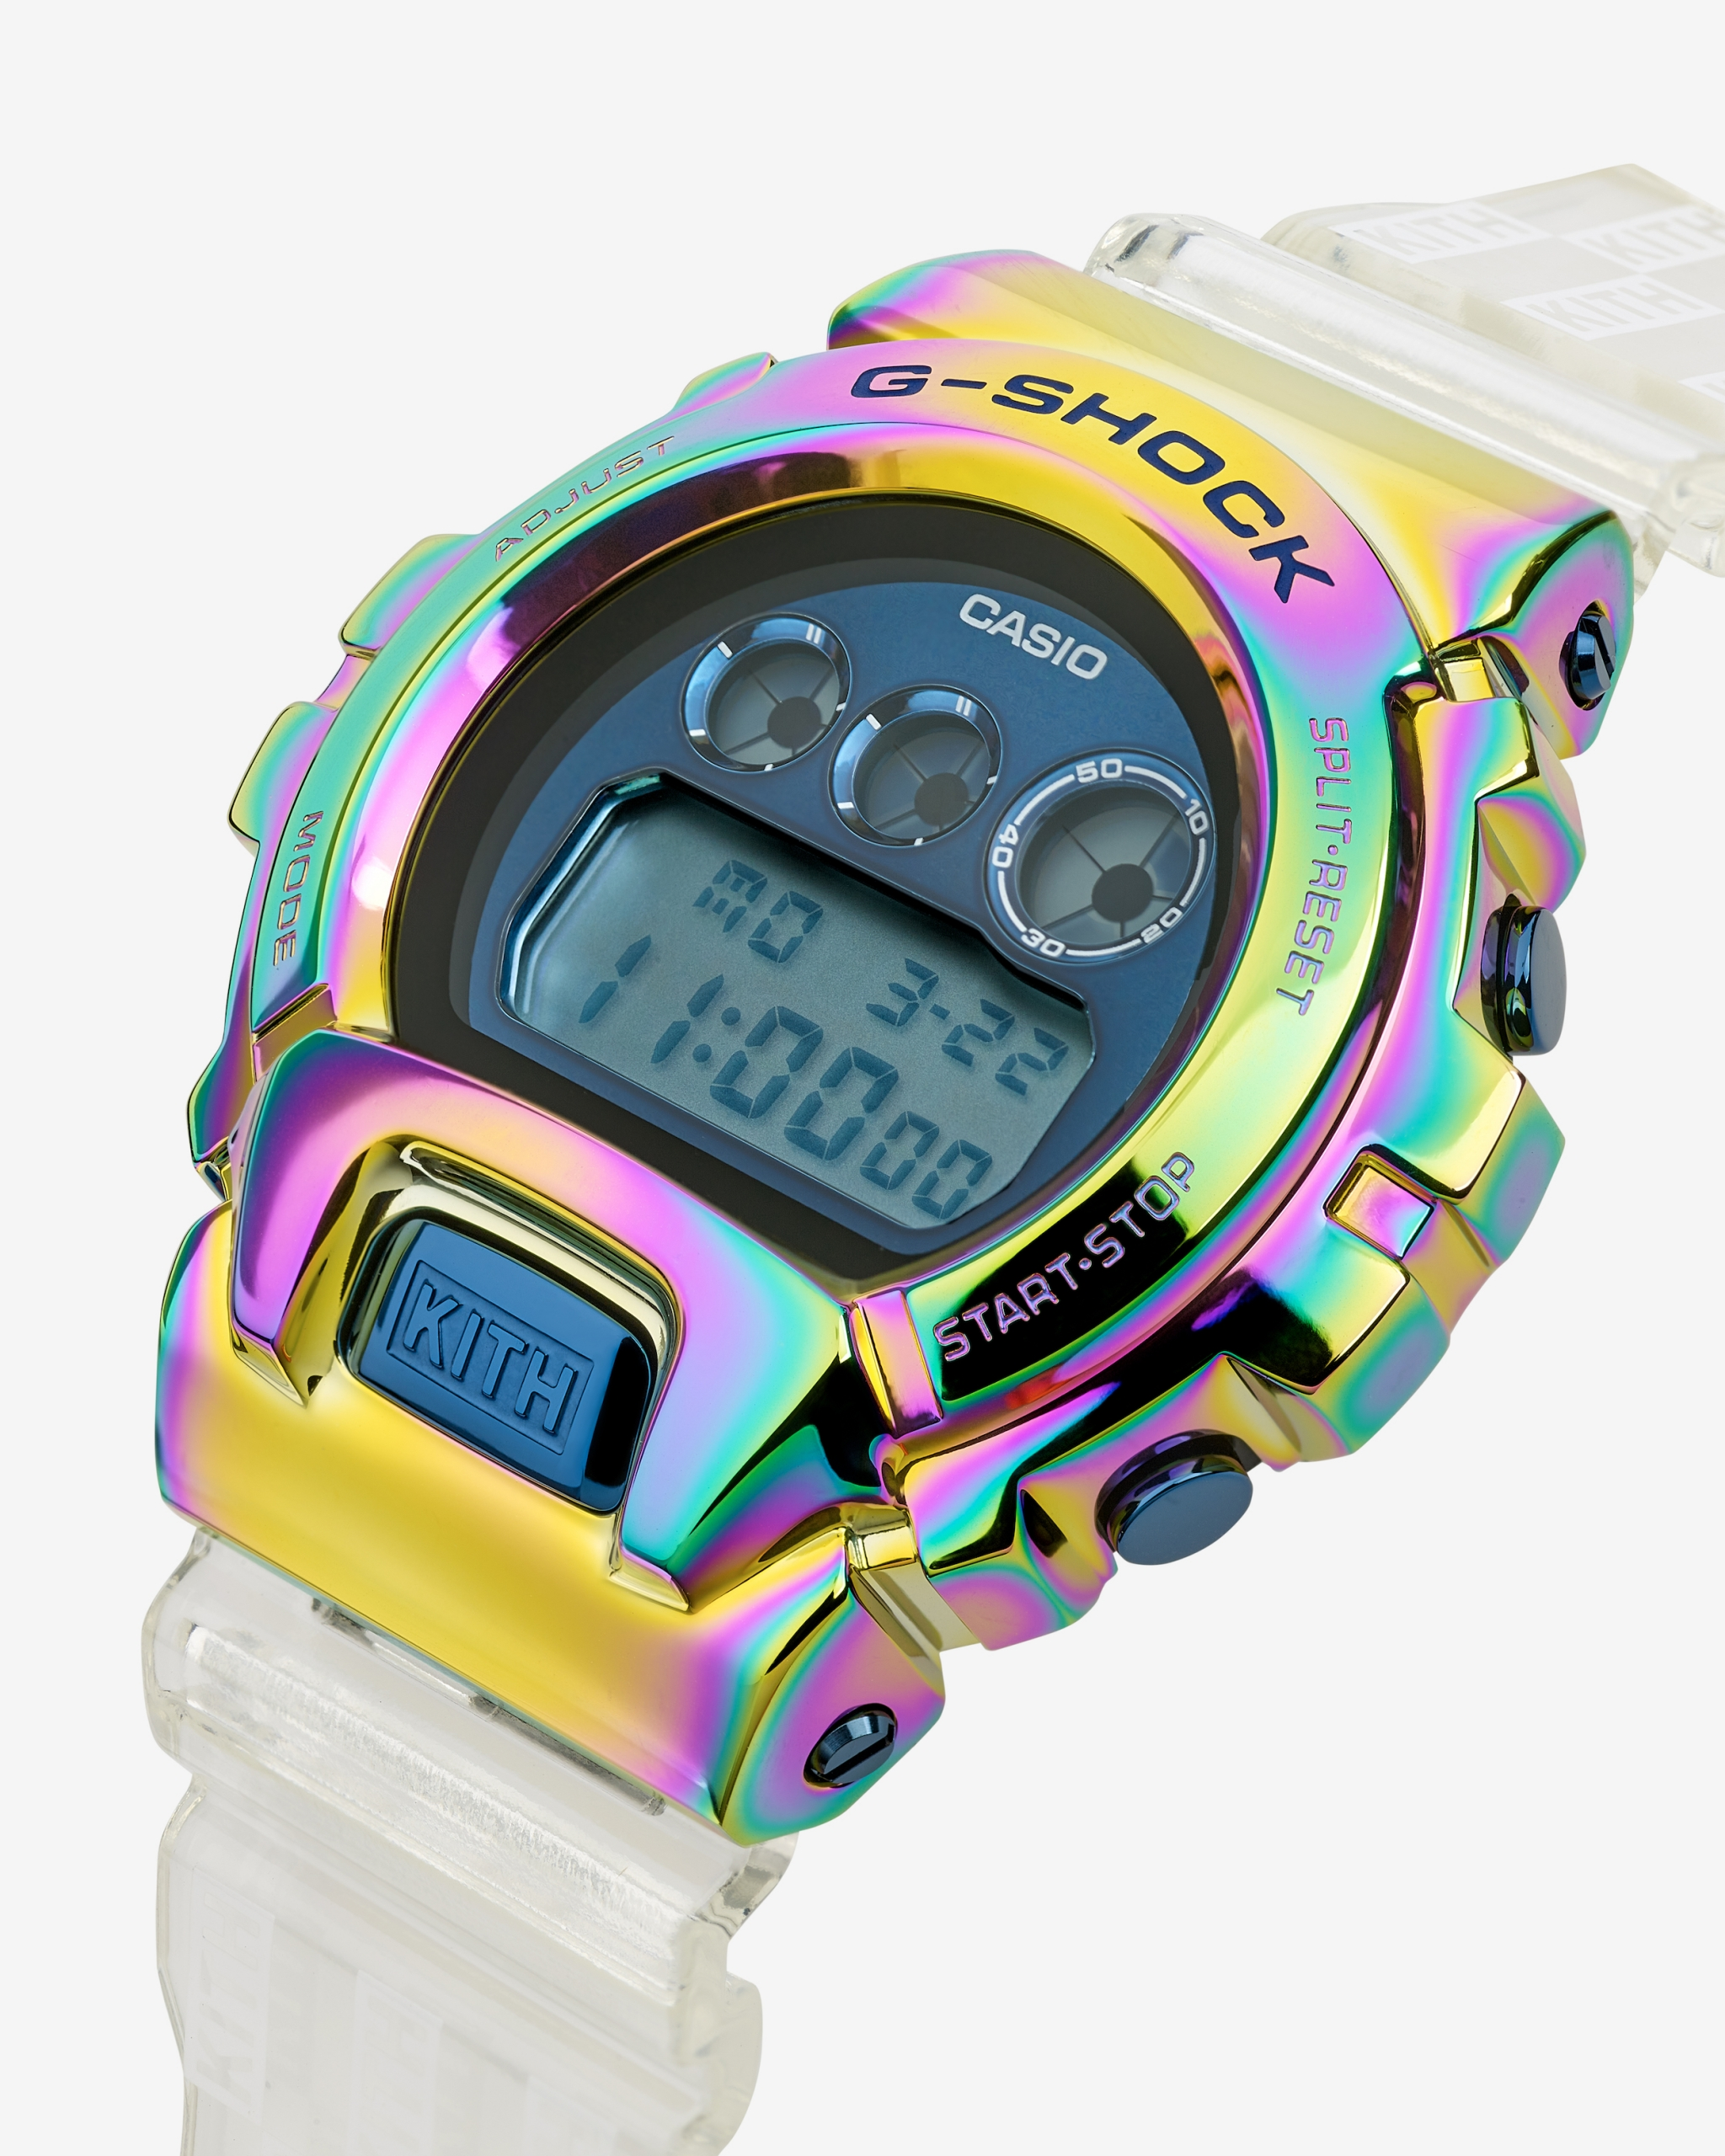 2021 Kith G-Shock GM-6900 Rainbow